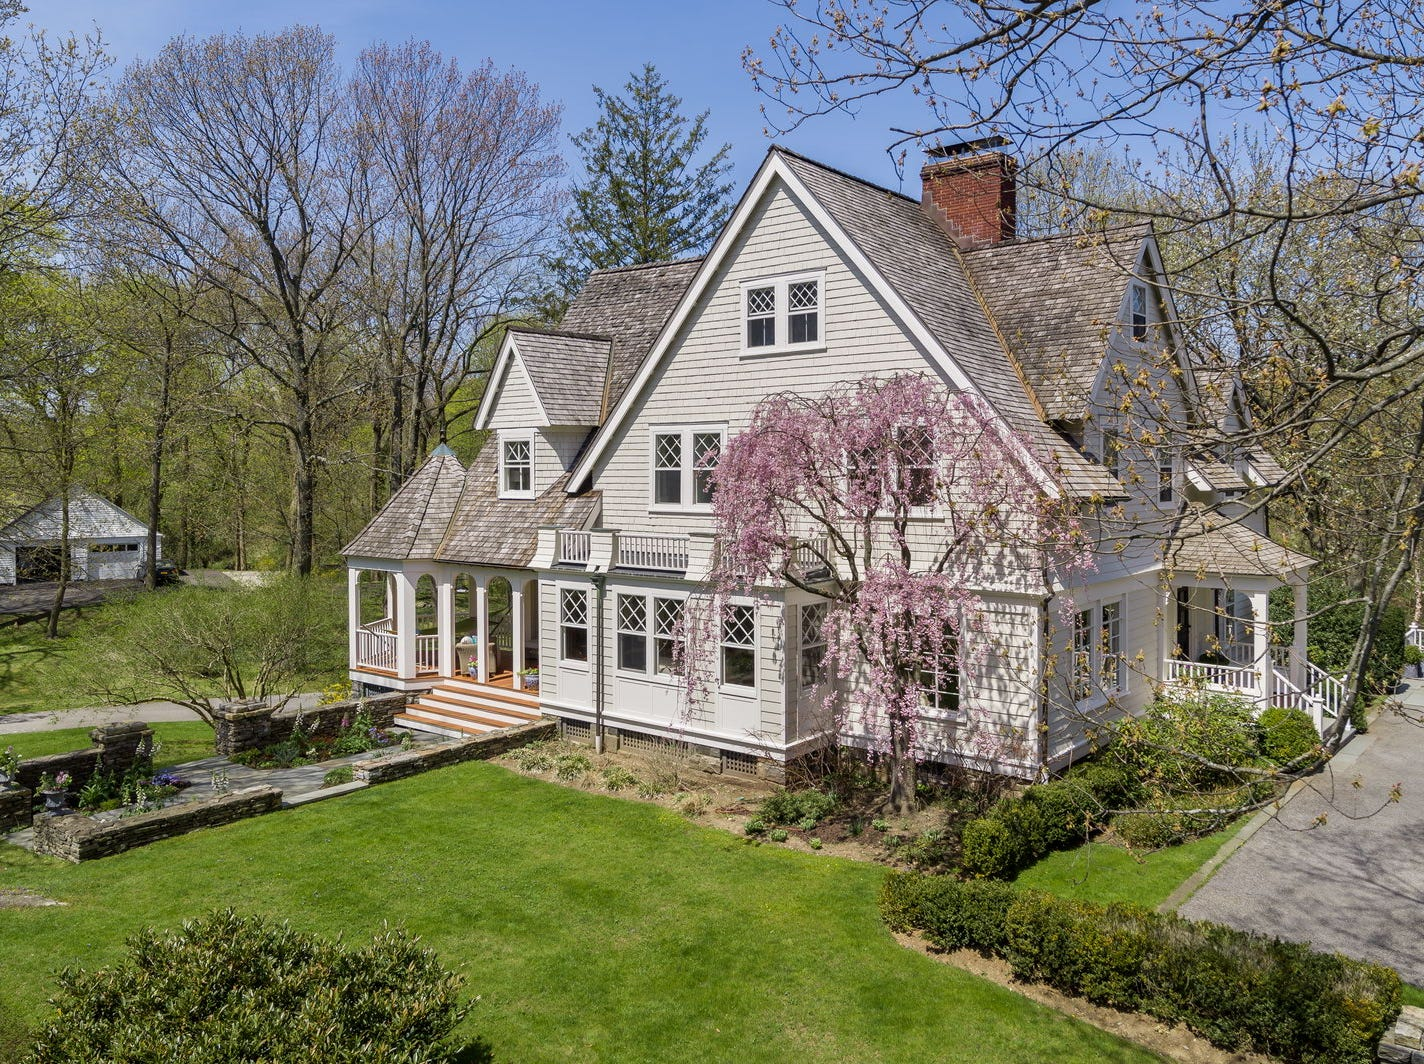 Famed aviation pioneer Ruth Rowland  Nichols lived in this Rye home, now on the market. Built in 1880, the Shingle style colonial  includes a carriage house. The residence has had a modern renovation.